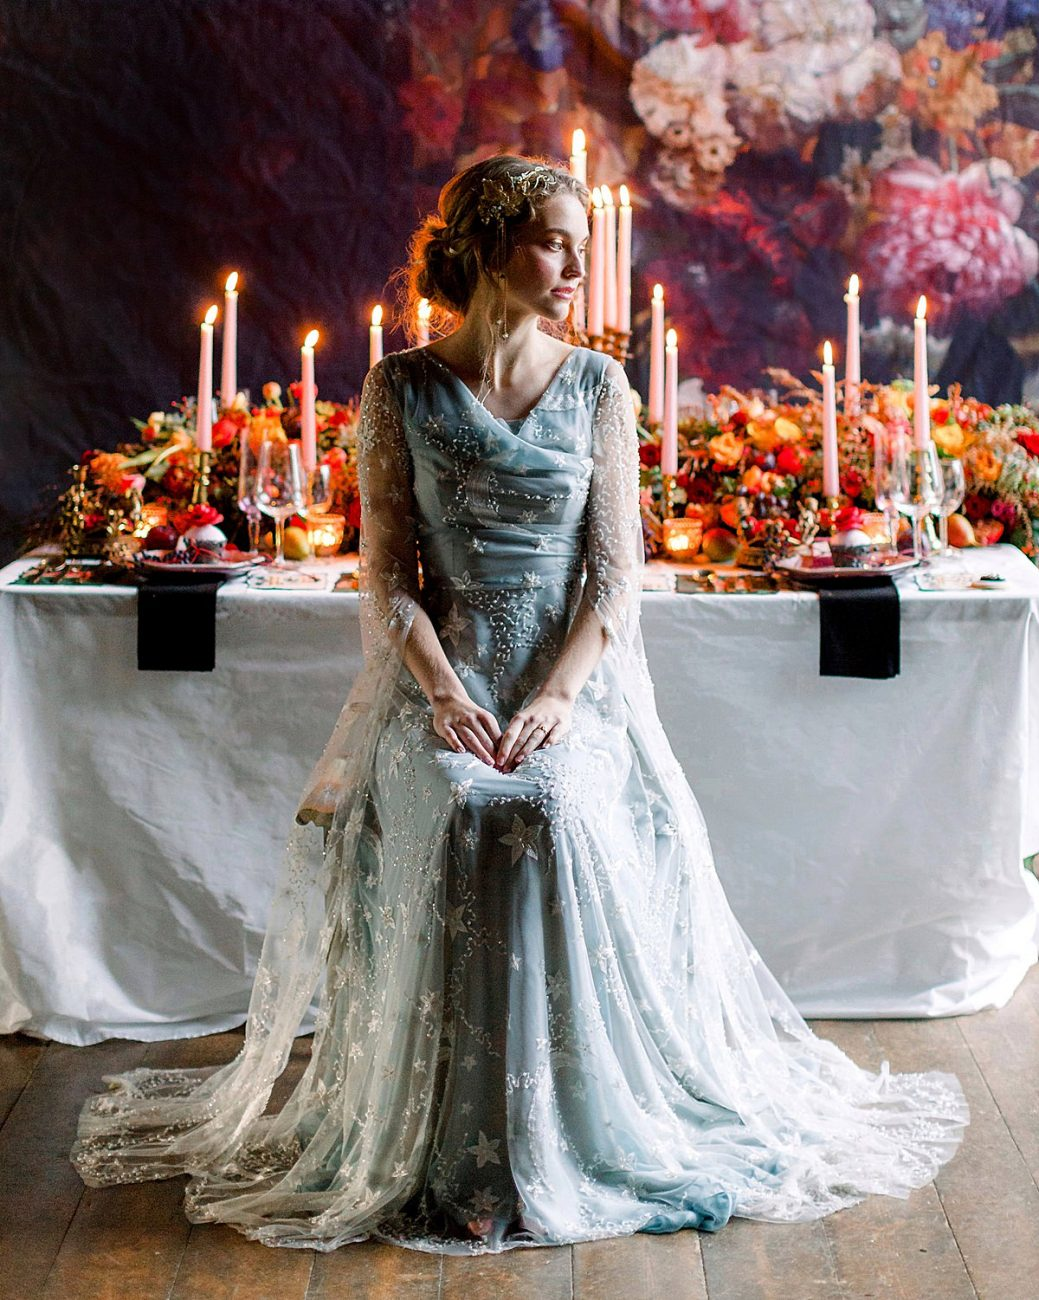 Baroque wedding ideas with a bride in a light blue and white dress